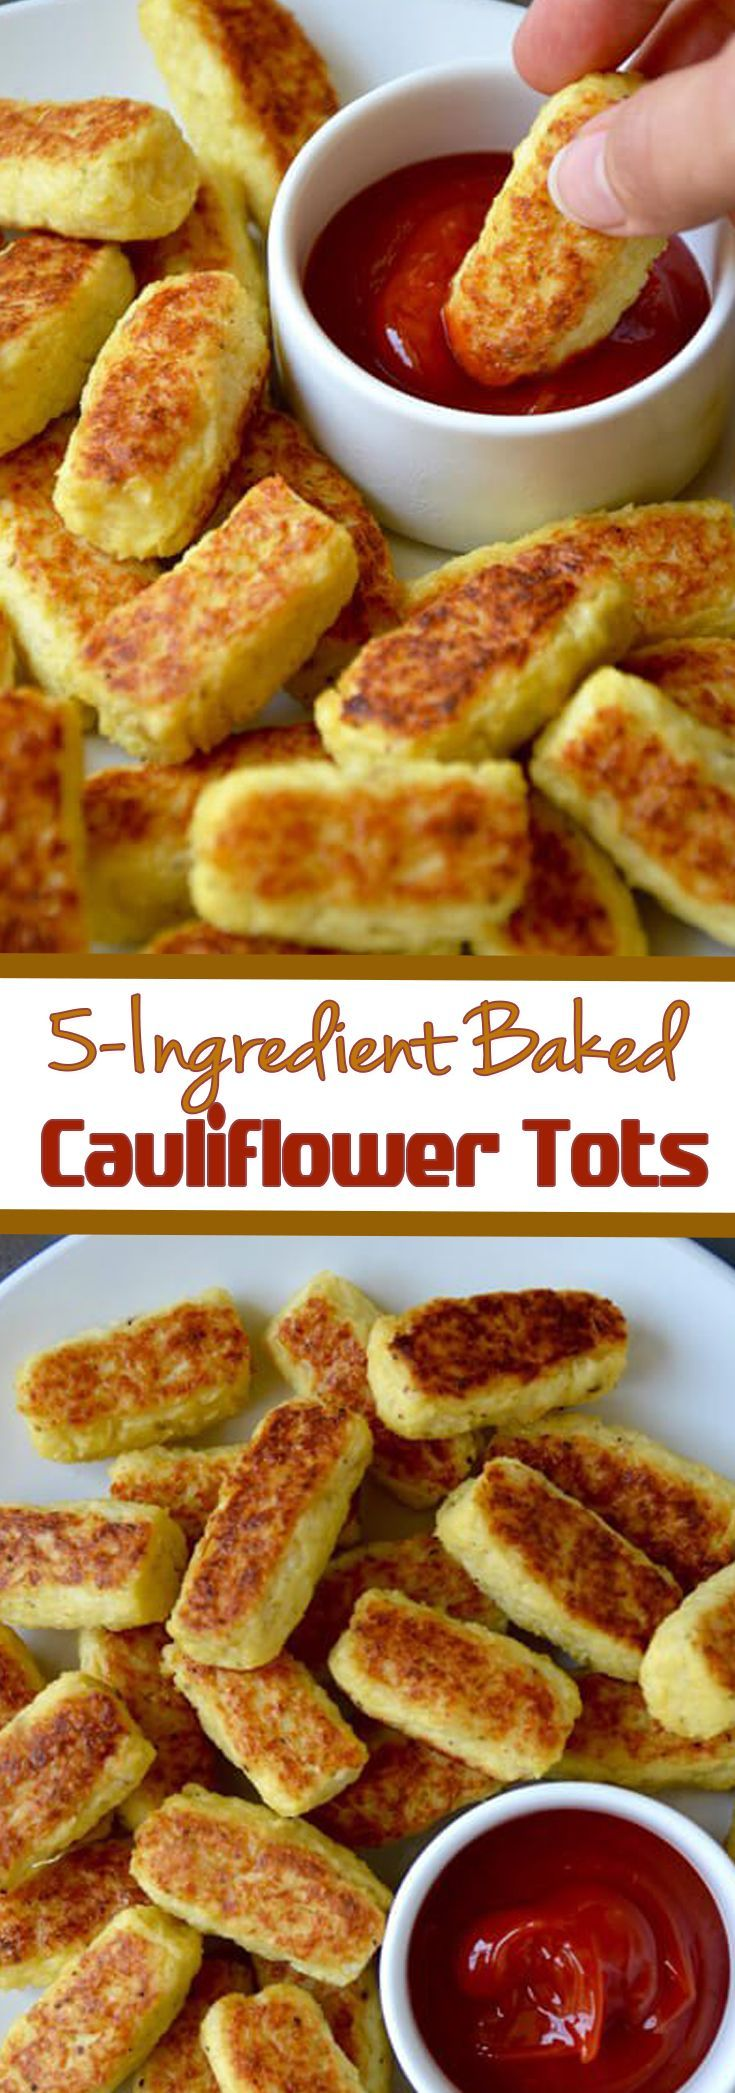 5-Ingredient Baked Cauliflower Tots